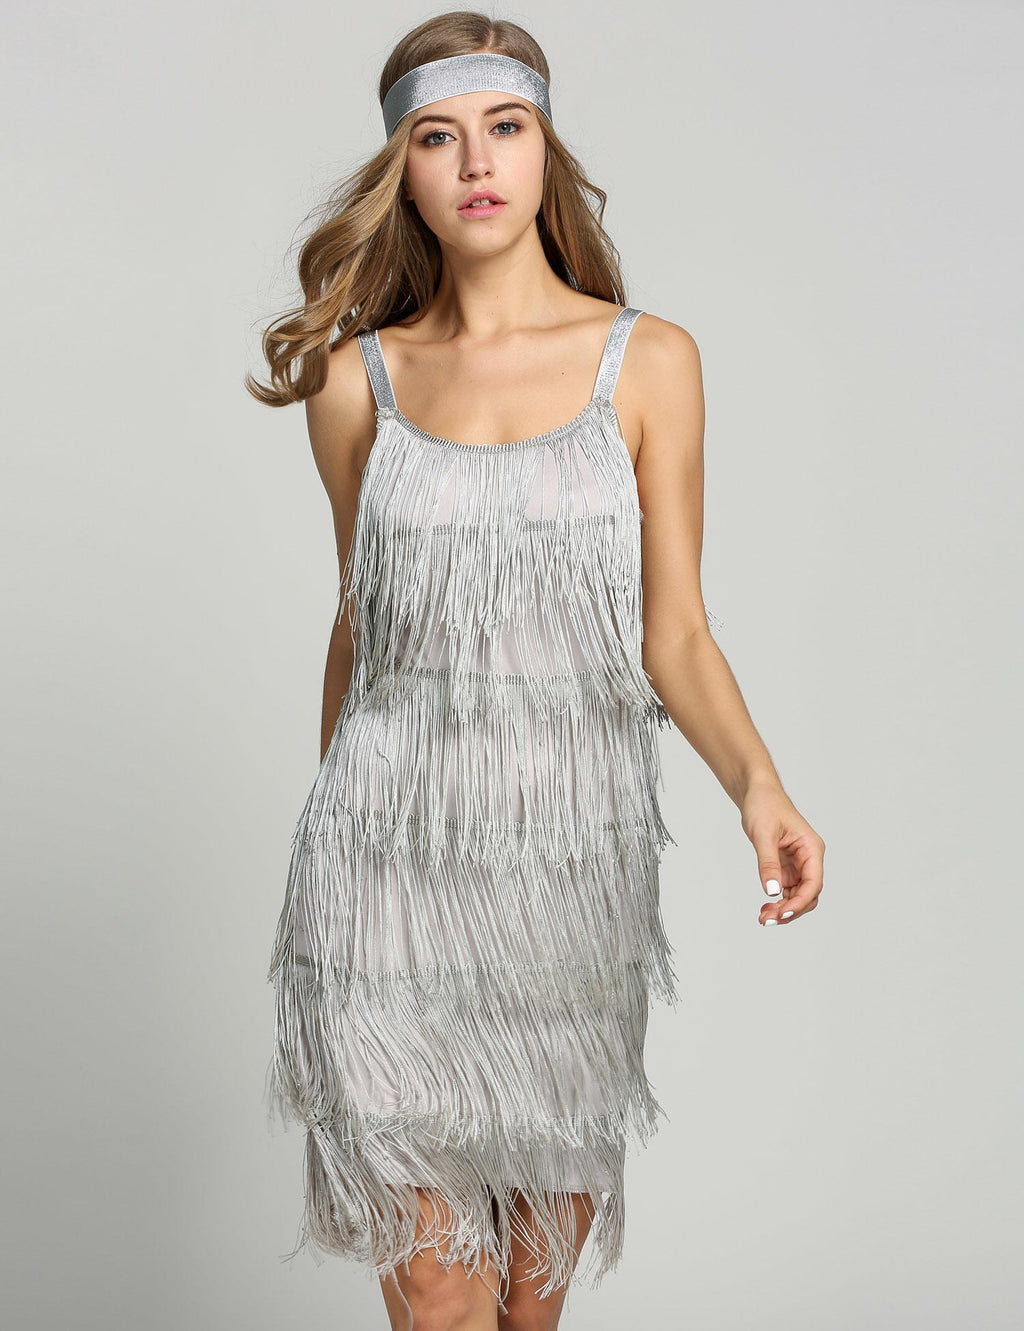 Women's Pretty Gray Color 1920s Fringe Dress